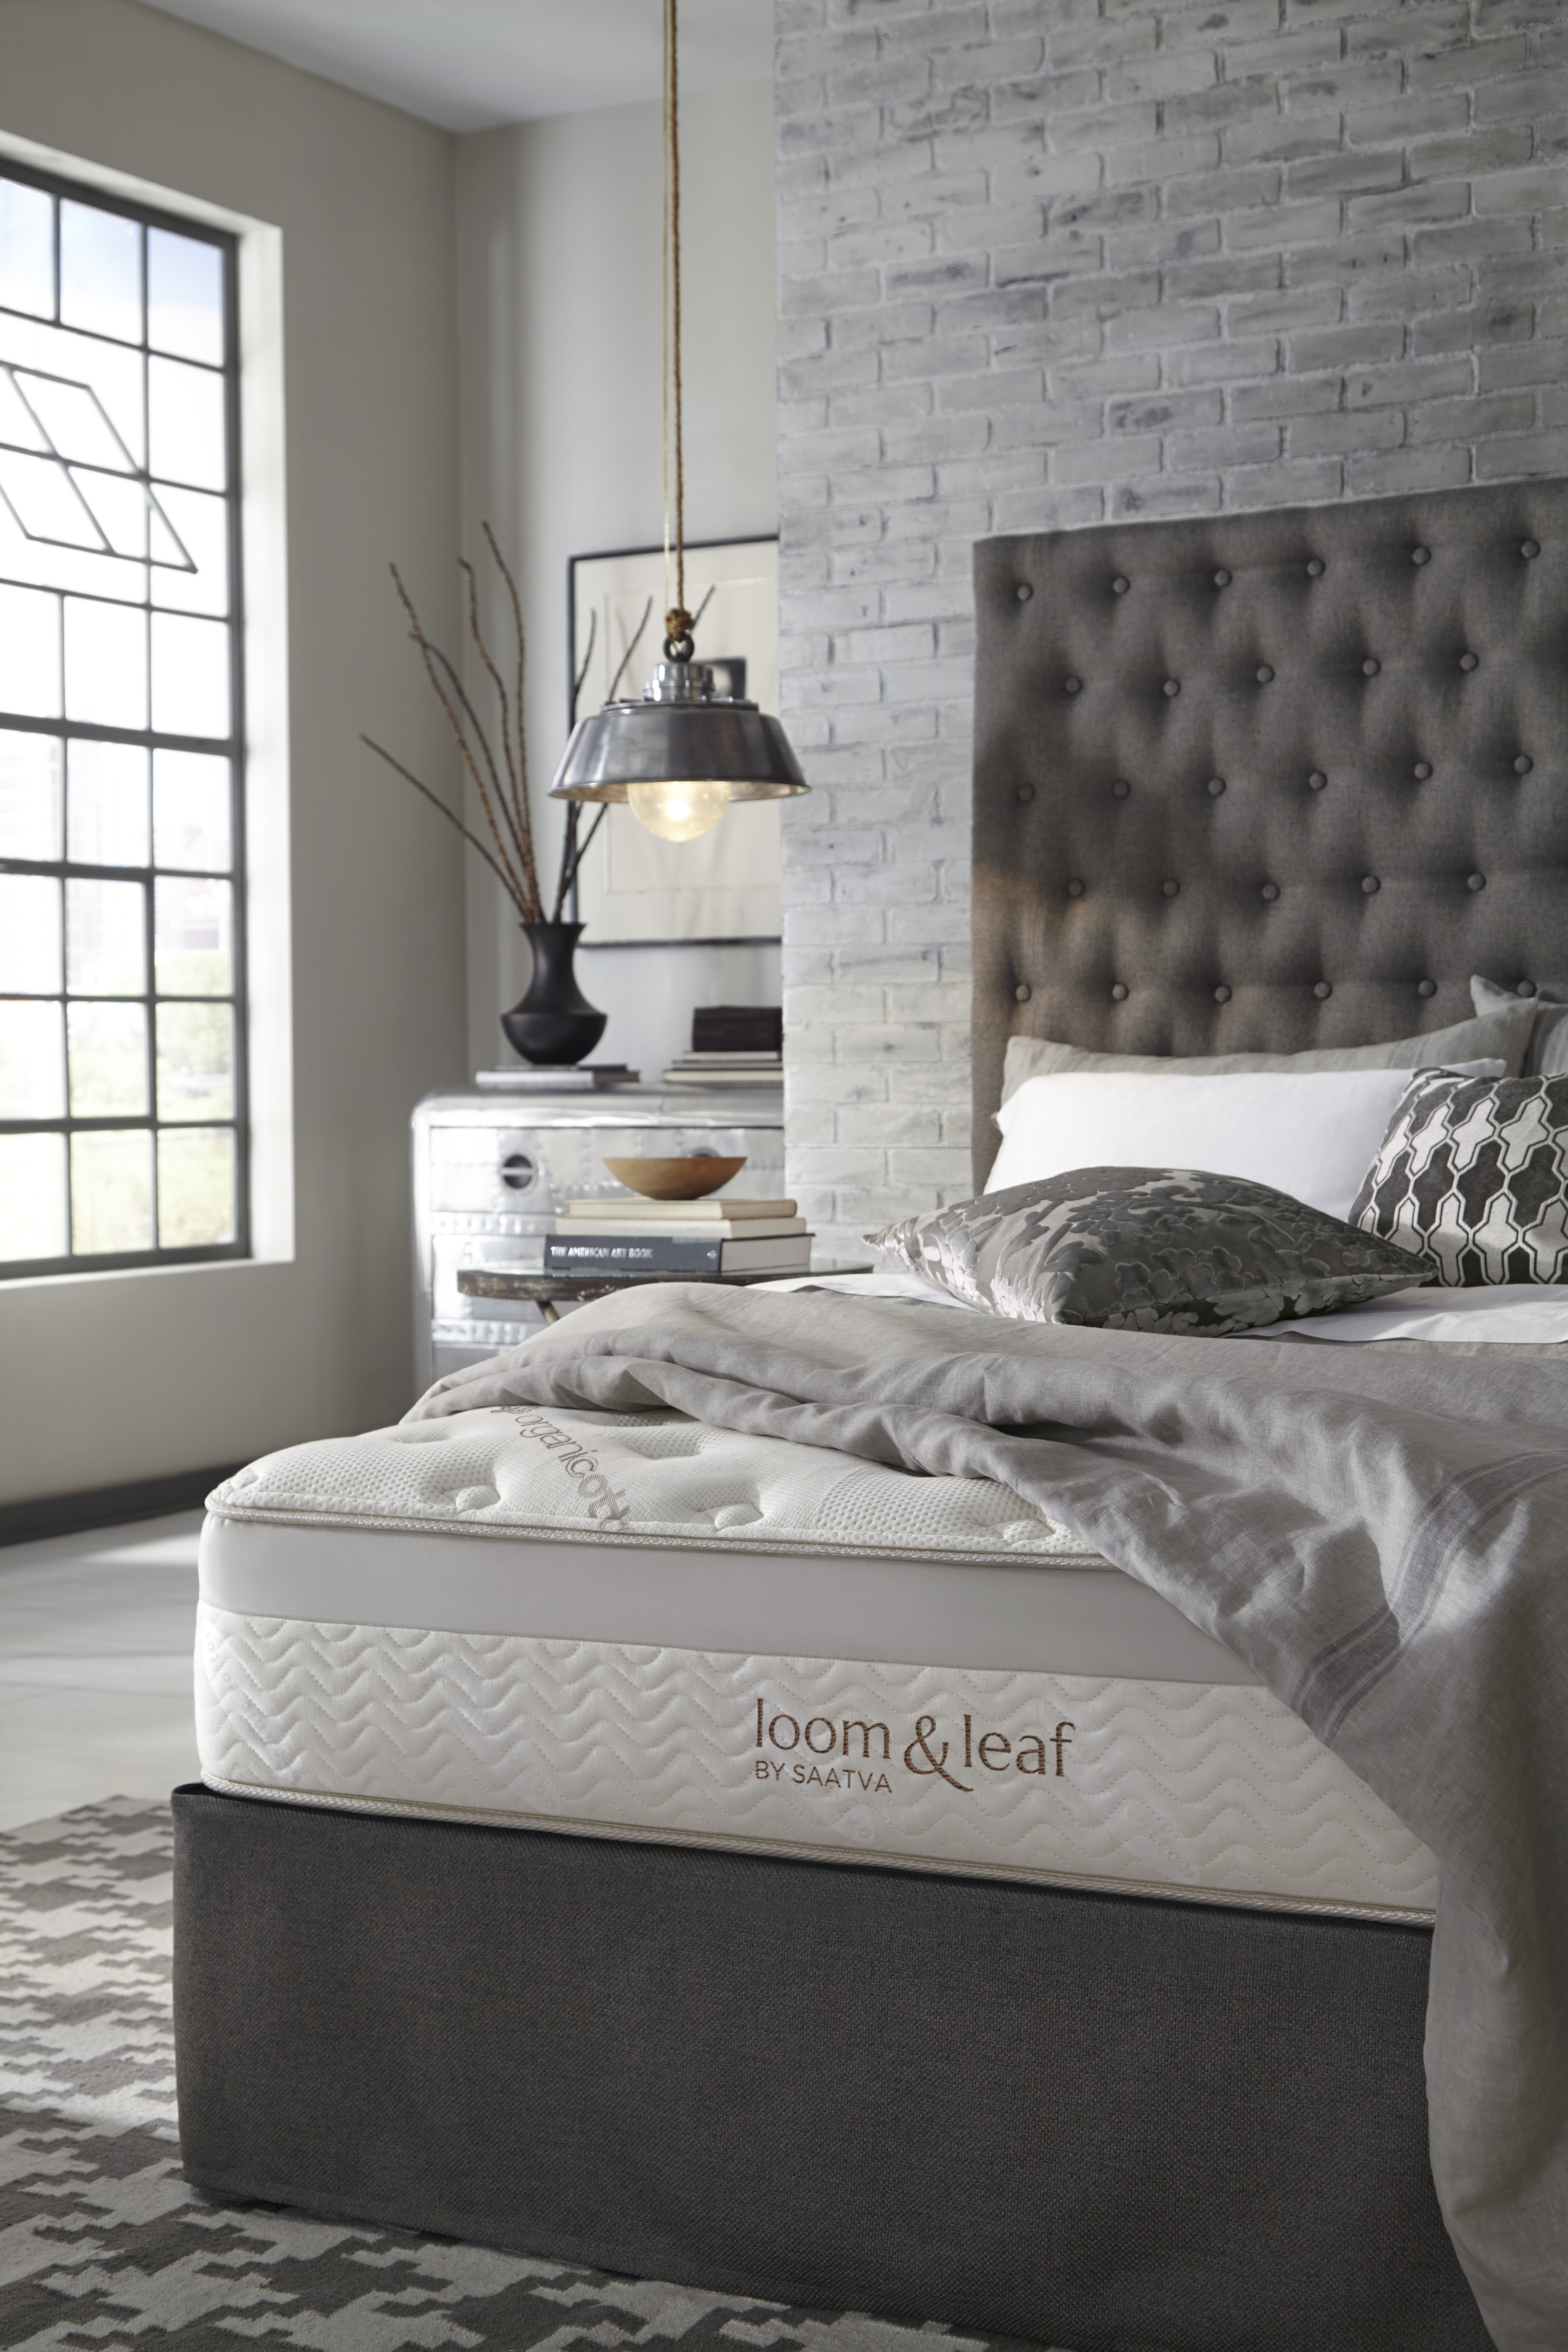 Loom & Leaf Mattress Reviews GoodBed